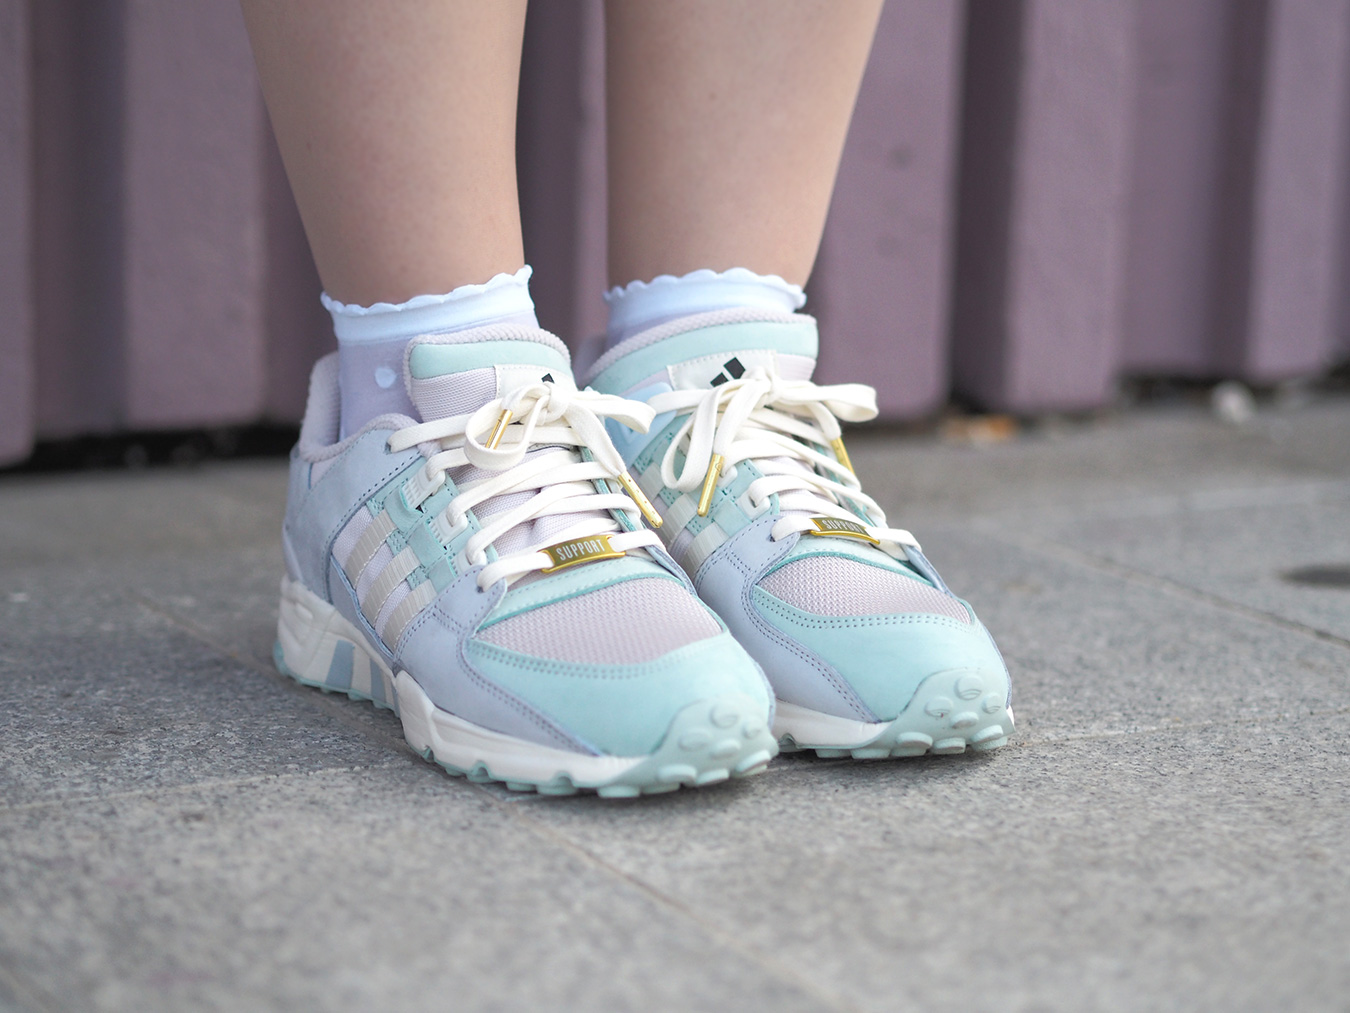 miadidas-eqt-support-lazykat